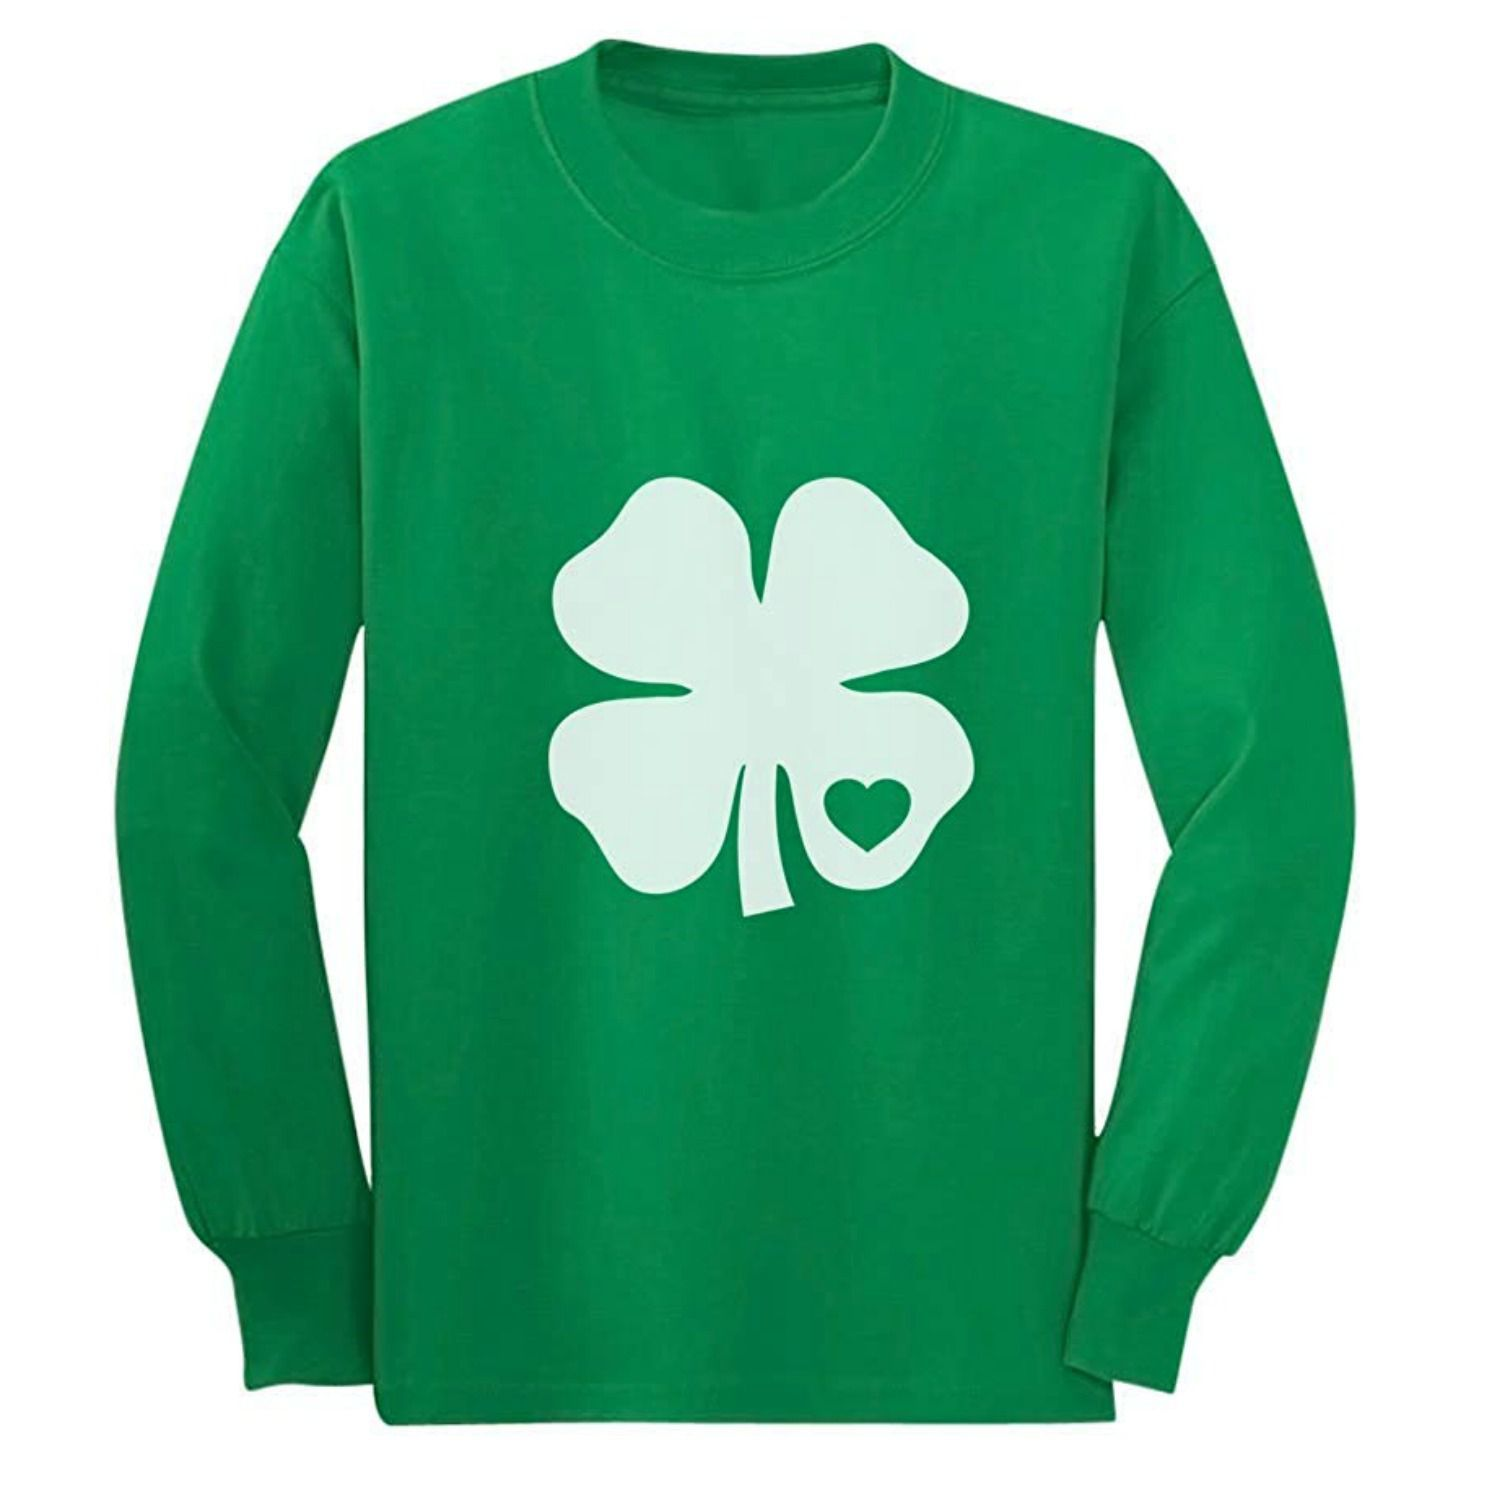 c1743956f 10 Best St. Patrick's Day Shirts for Kids in 2019 - Cute Kids St. Patrick's  Day T Shirts